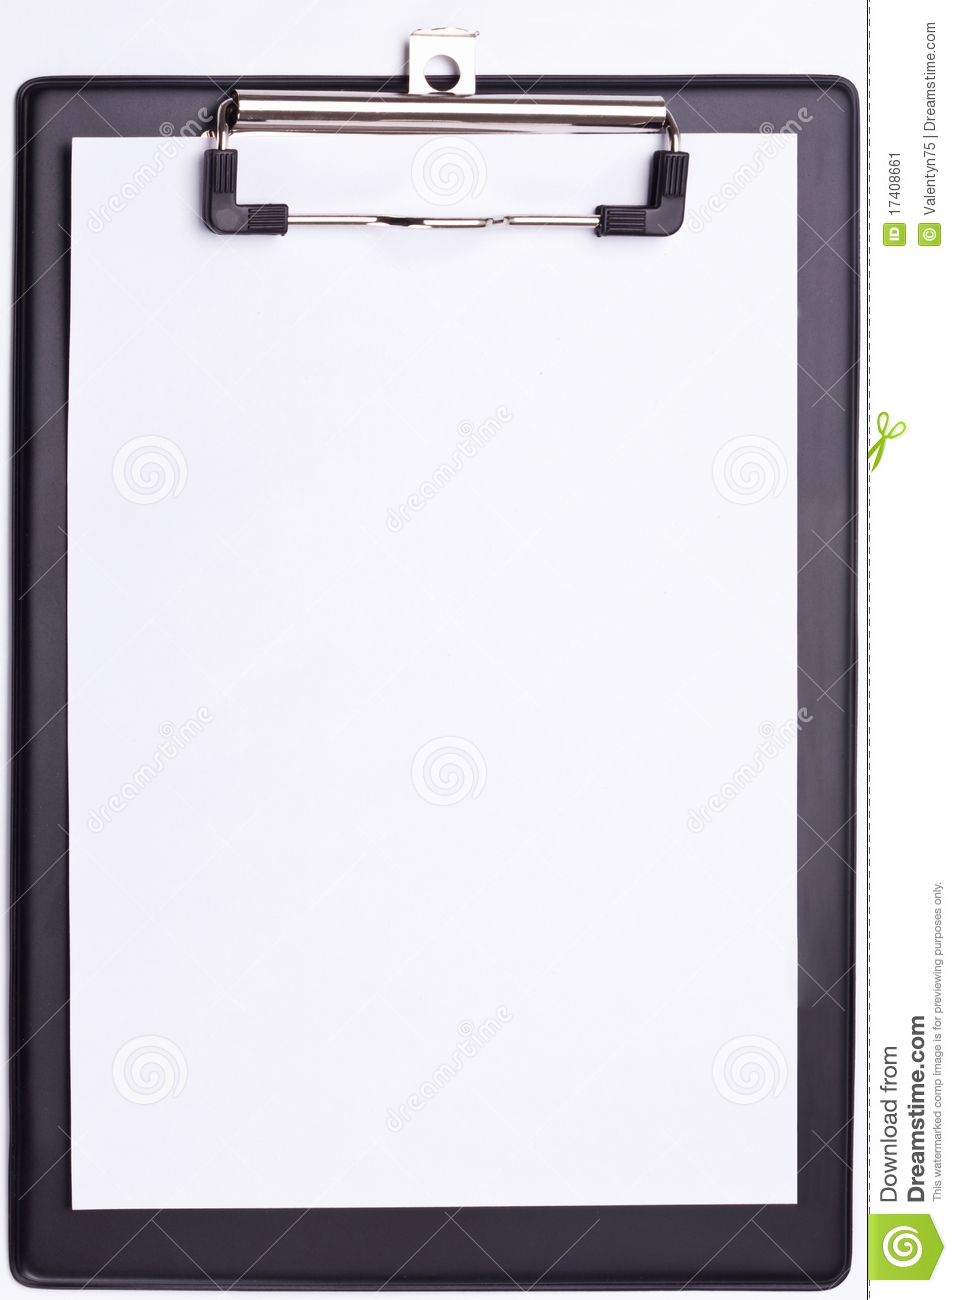 Black clipboard.